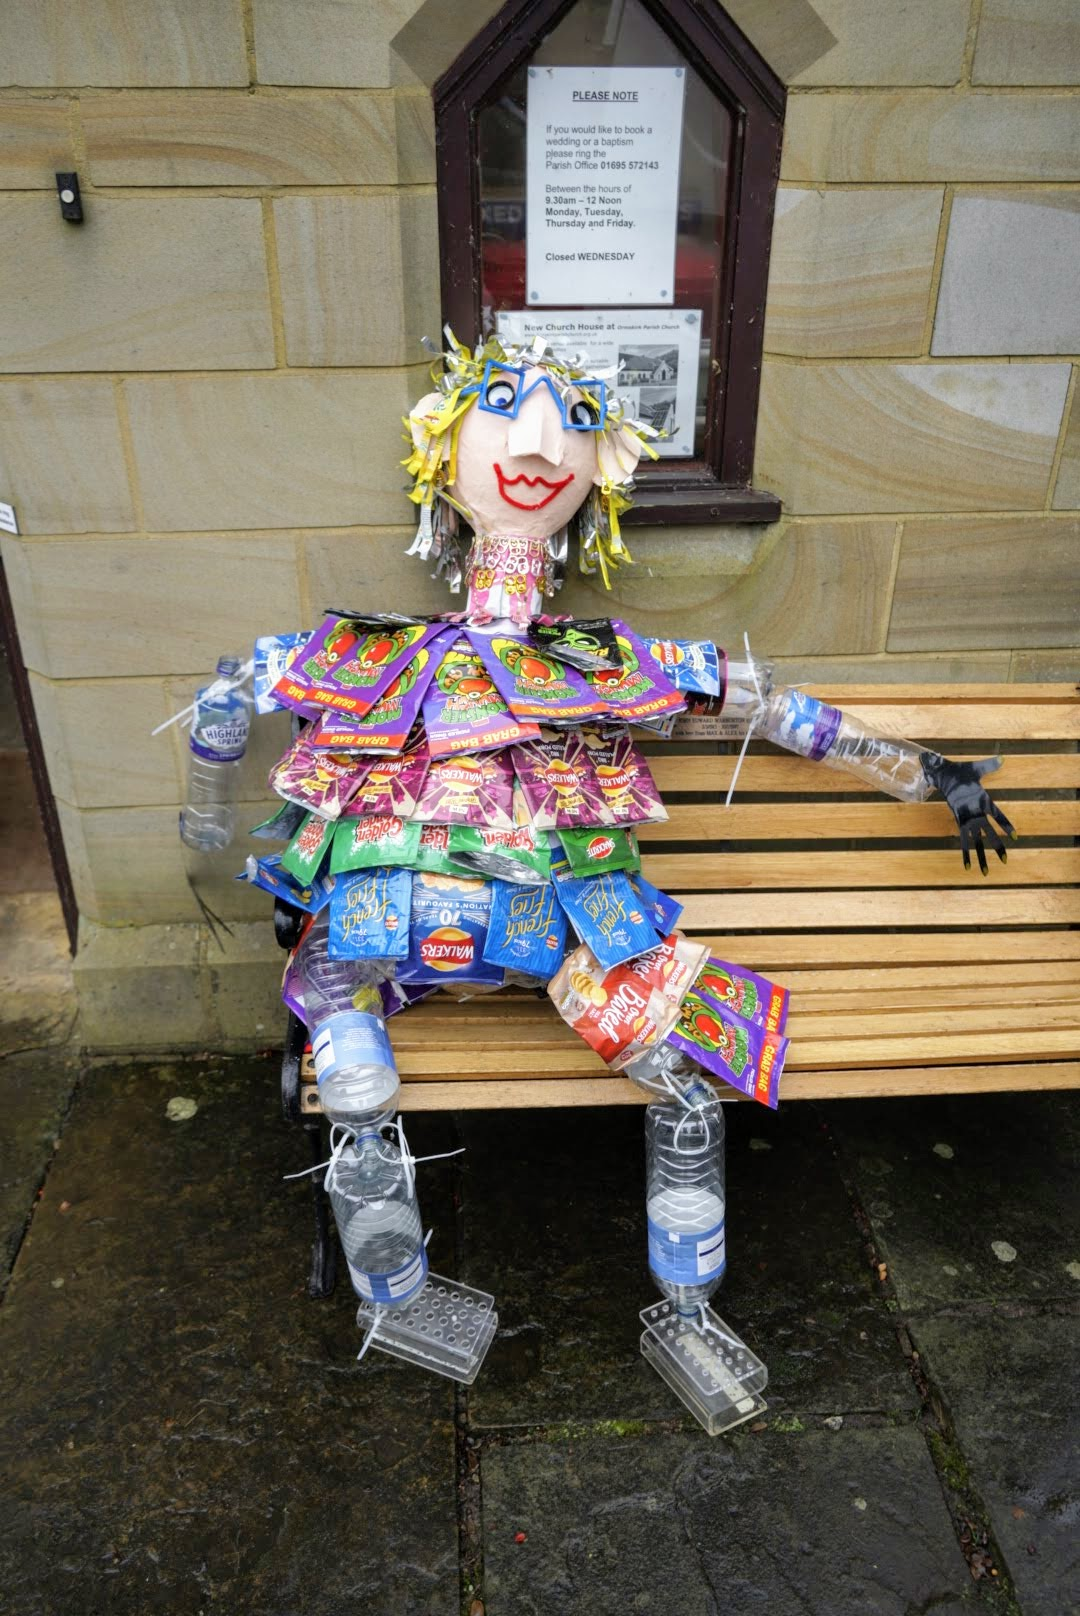 Lucy, recycled scarecrow sitting on a bench